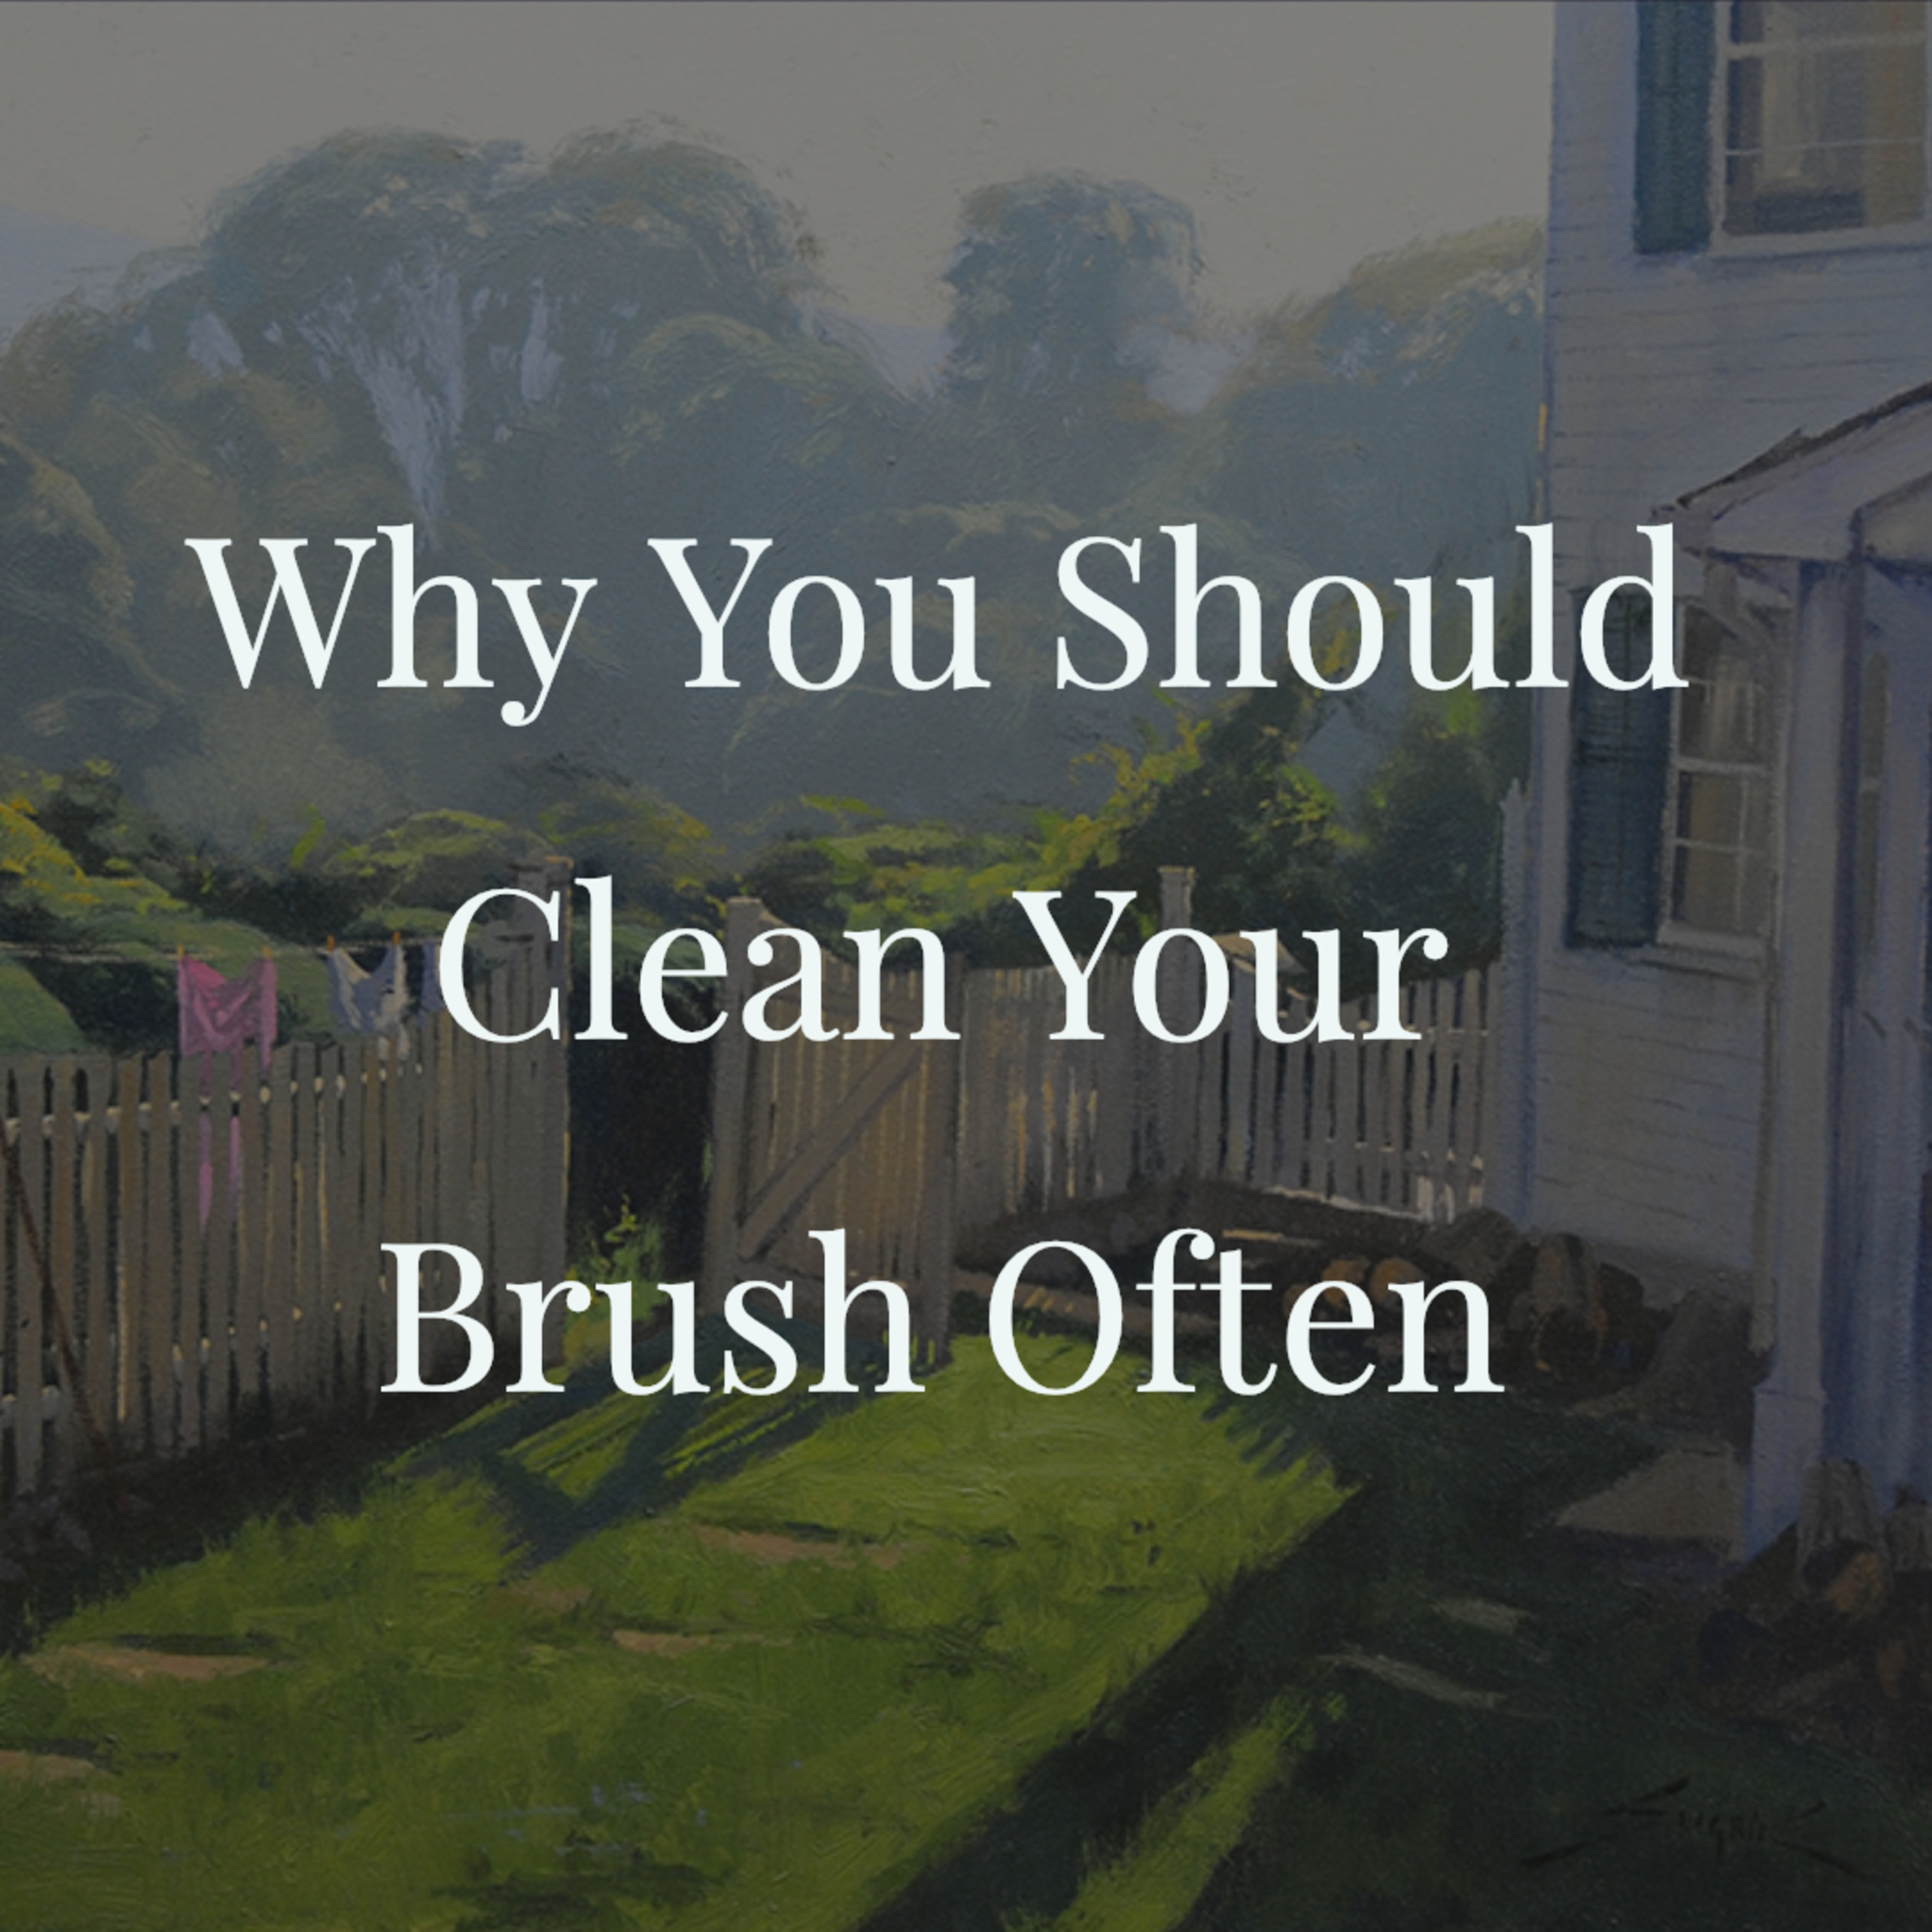 Why You Should Clean Your Brush Often